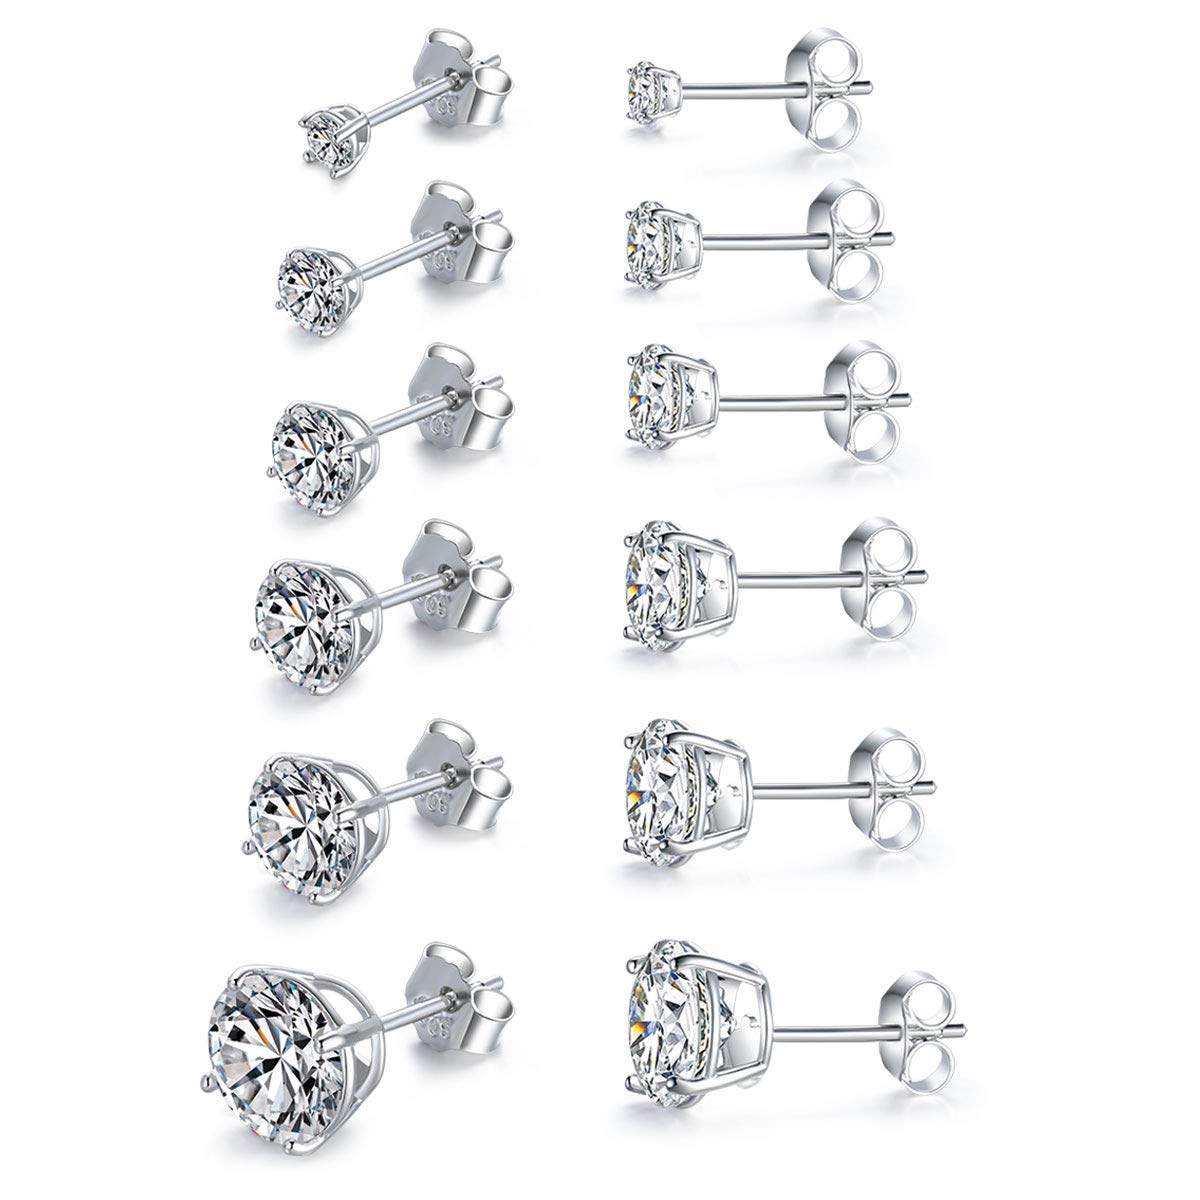 MASOP Sterling Silver Round Clear Cubic Zirconia CZ Stud Earrings Set White Crystal for Men Women 6 Pairs (3mm-8mm)